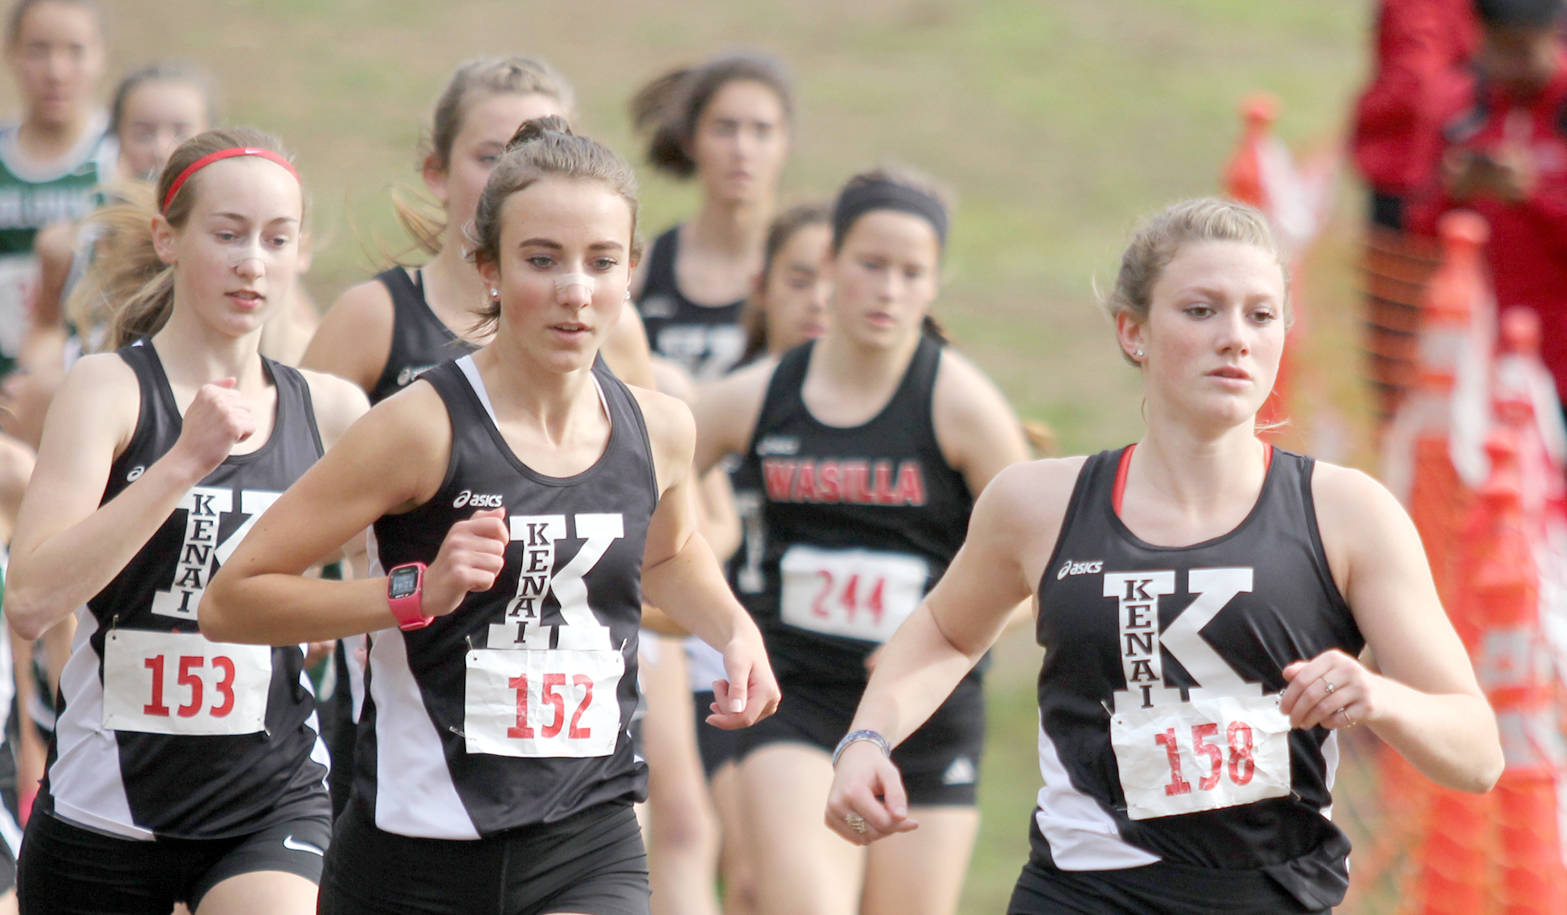 Kenai Central senior Addison Gibson leads a trio of Kards early in the varsity girls' race of the Wasilla Invitational Saturday, Sept. 9, 2017, at the Government Peak Recreation Area near Palmer. Gibson finished second. From left are Jaycie Calvert, Brooke Satathite and Riana Boonstra. (Photo by Jeremiah Bartz/Frontiersman)